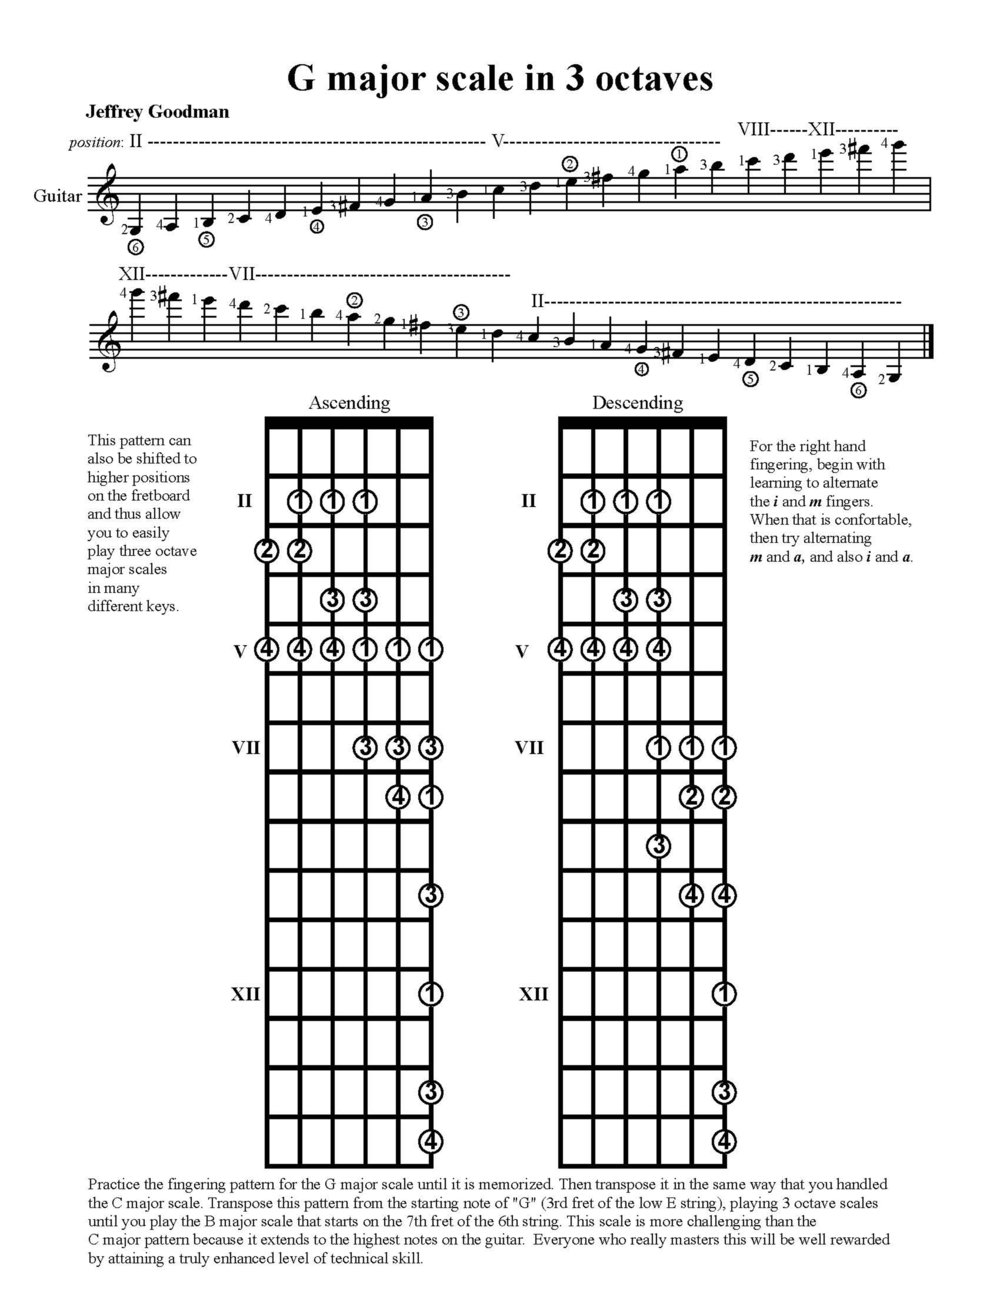 G Major scale - 3 octaves ascending and descending 2.jpg